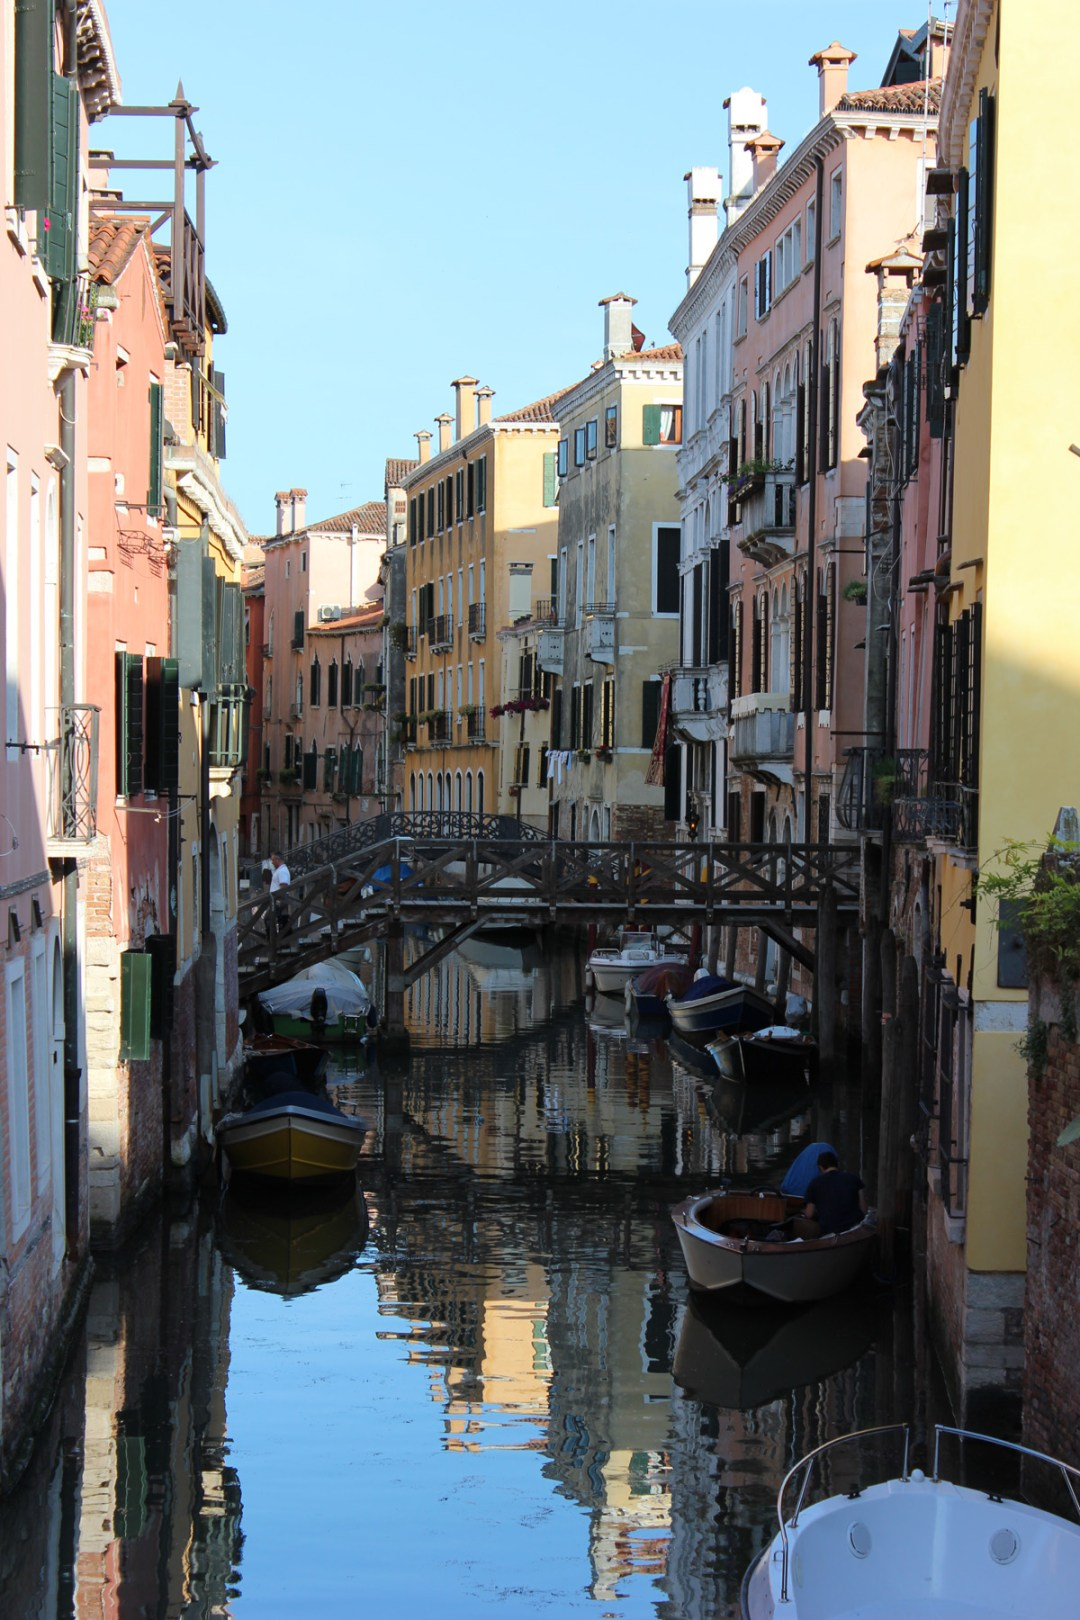 Venise-voyage-copyright-happynewgreen-110